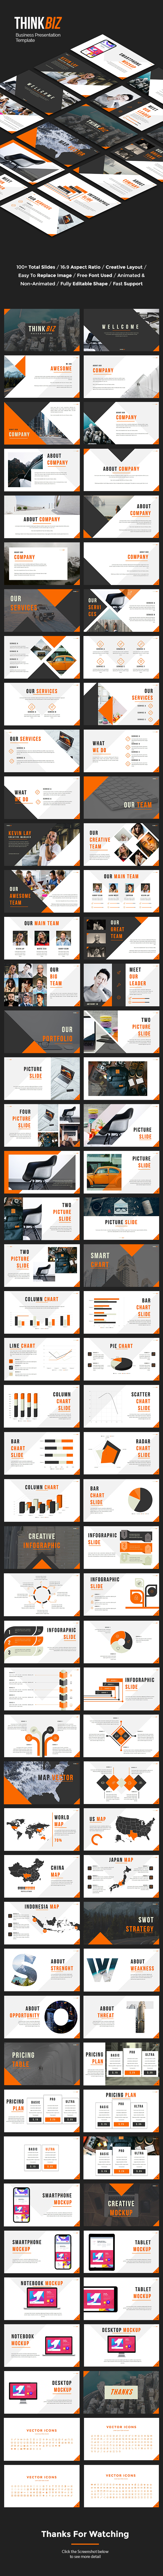 ThinkBiz - Business PowerPoint Template - Business PowerPoint Templates